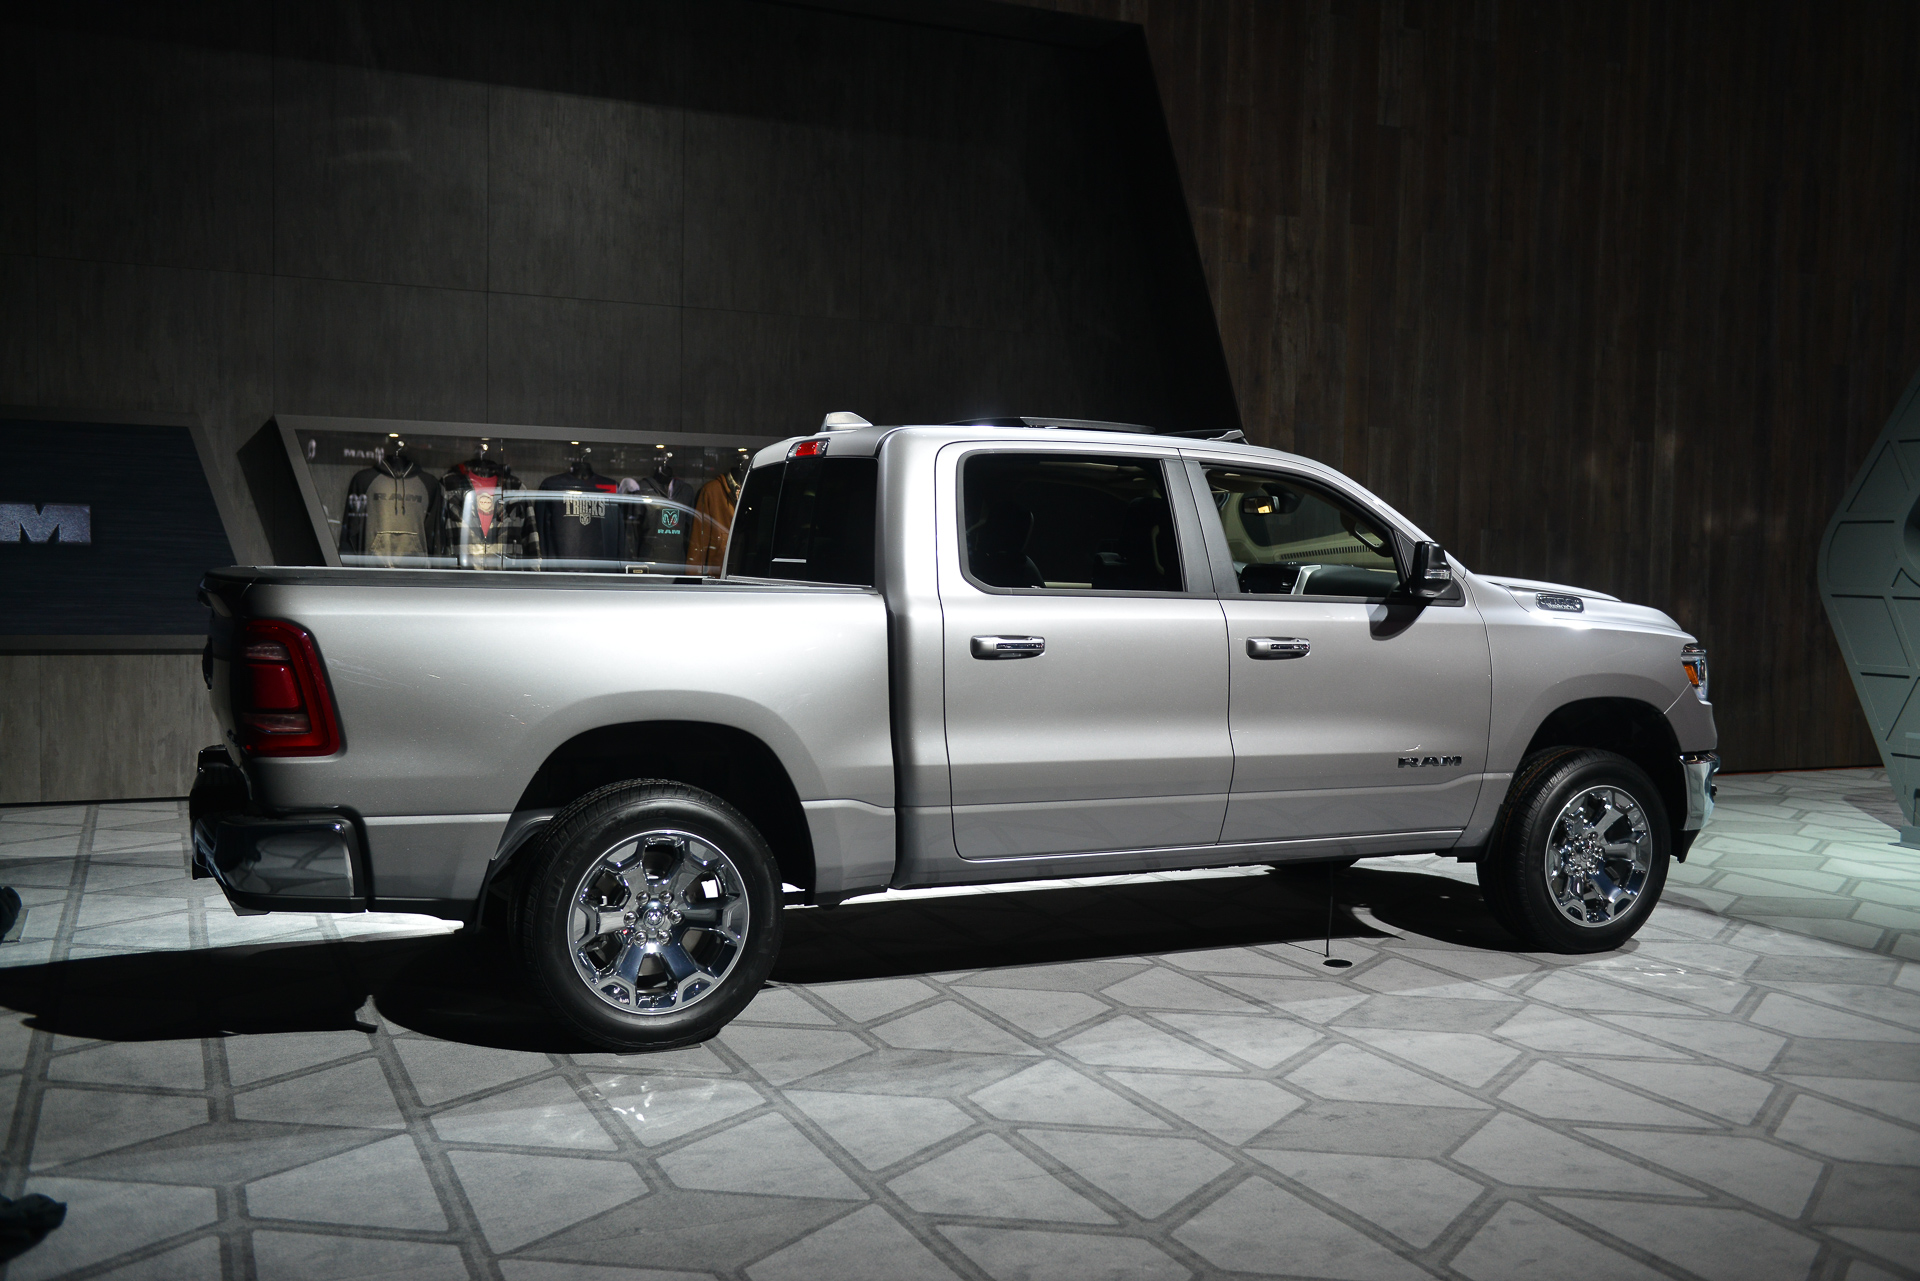 Nissan Columbus Ohio >> 2019 Ram 1500 revealed: Ram with a family plan for full-size pickup truck buyers